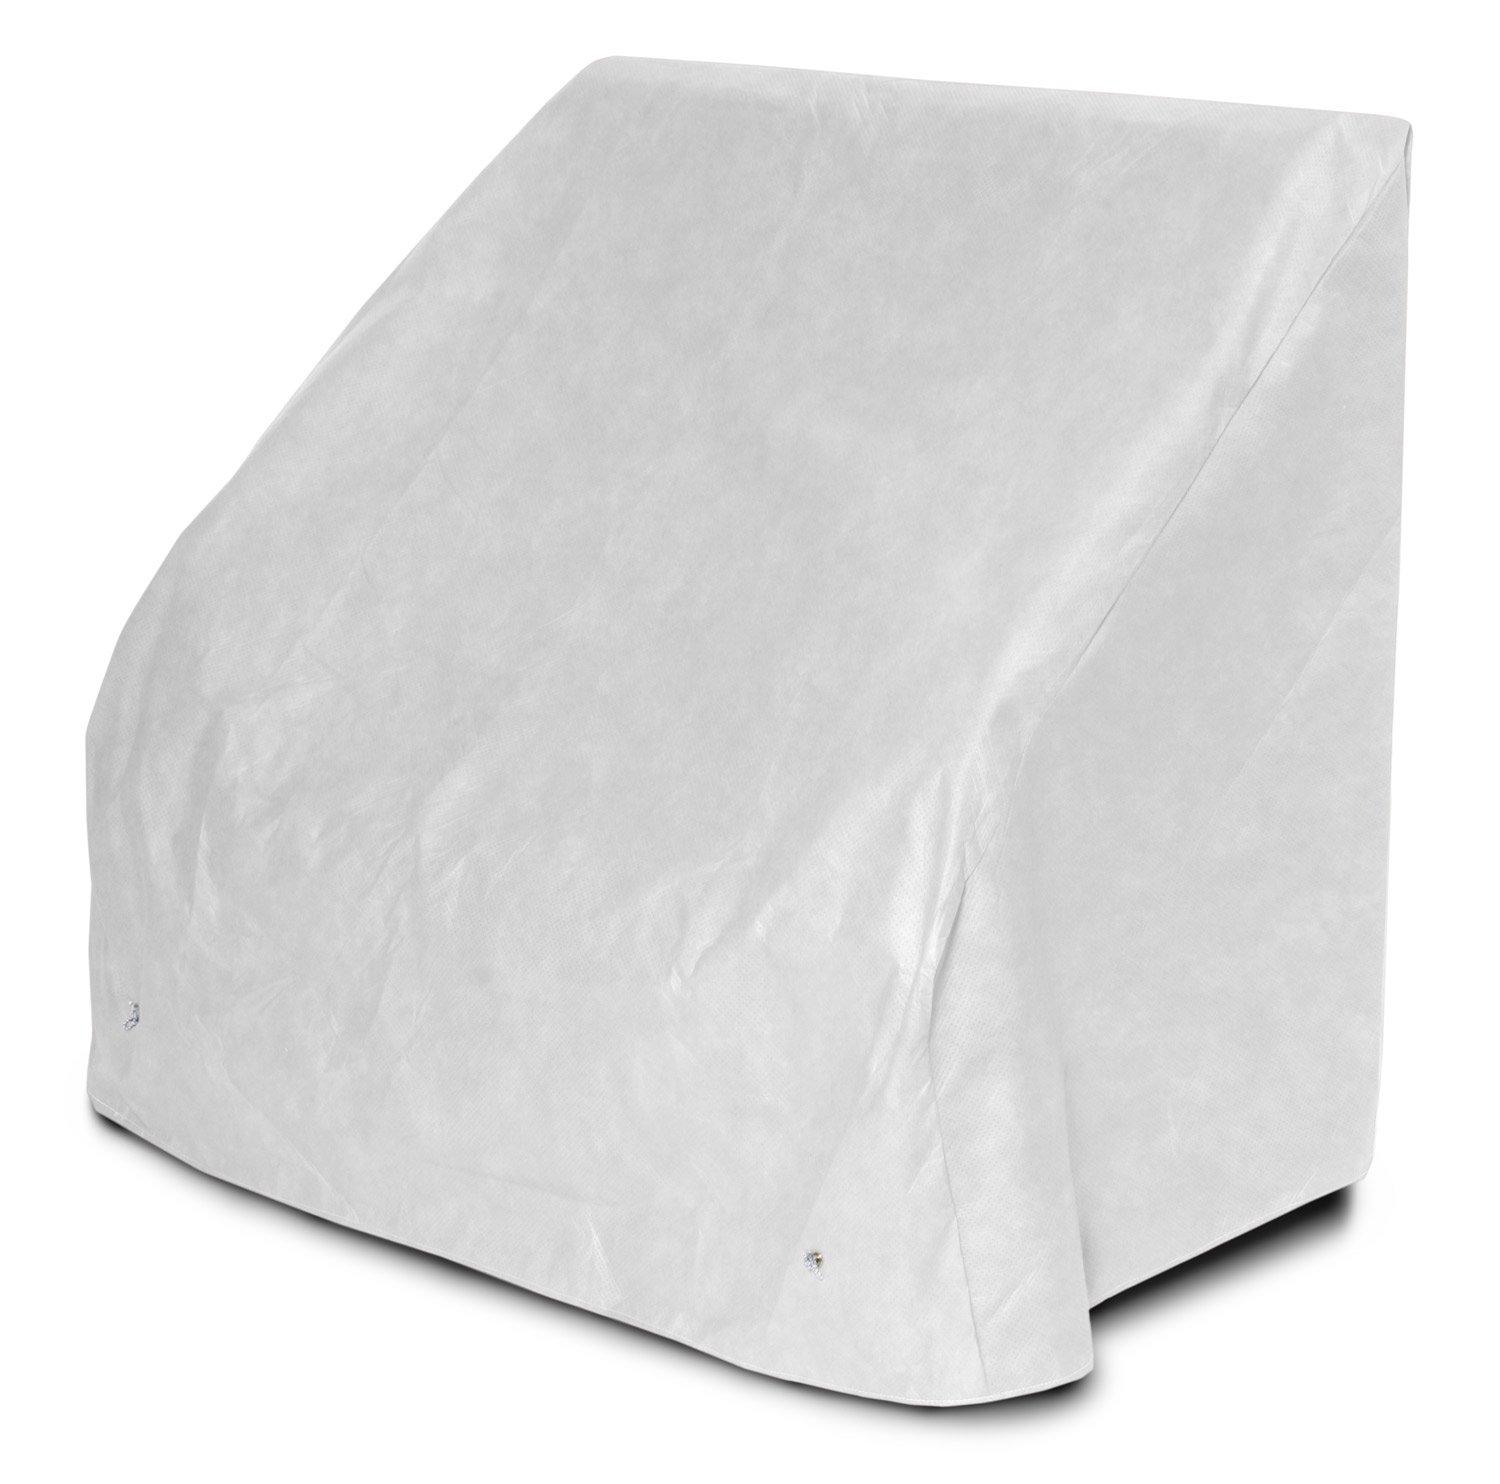 KoverRoos DuPont Tyvek 24202 4-Feet Bench/Glider Cover, 51-Inch Width by 26-Inch Diameter by 35-Inch Height, White by KOVERROOS (Image #1)